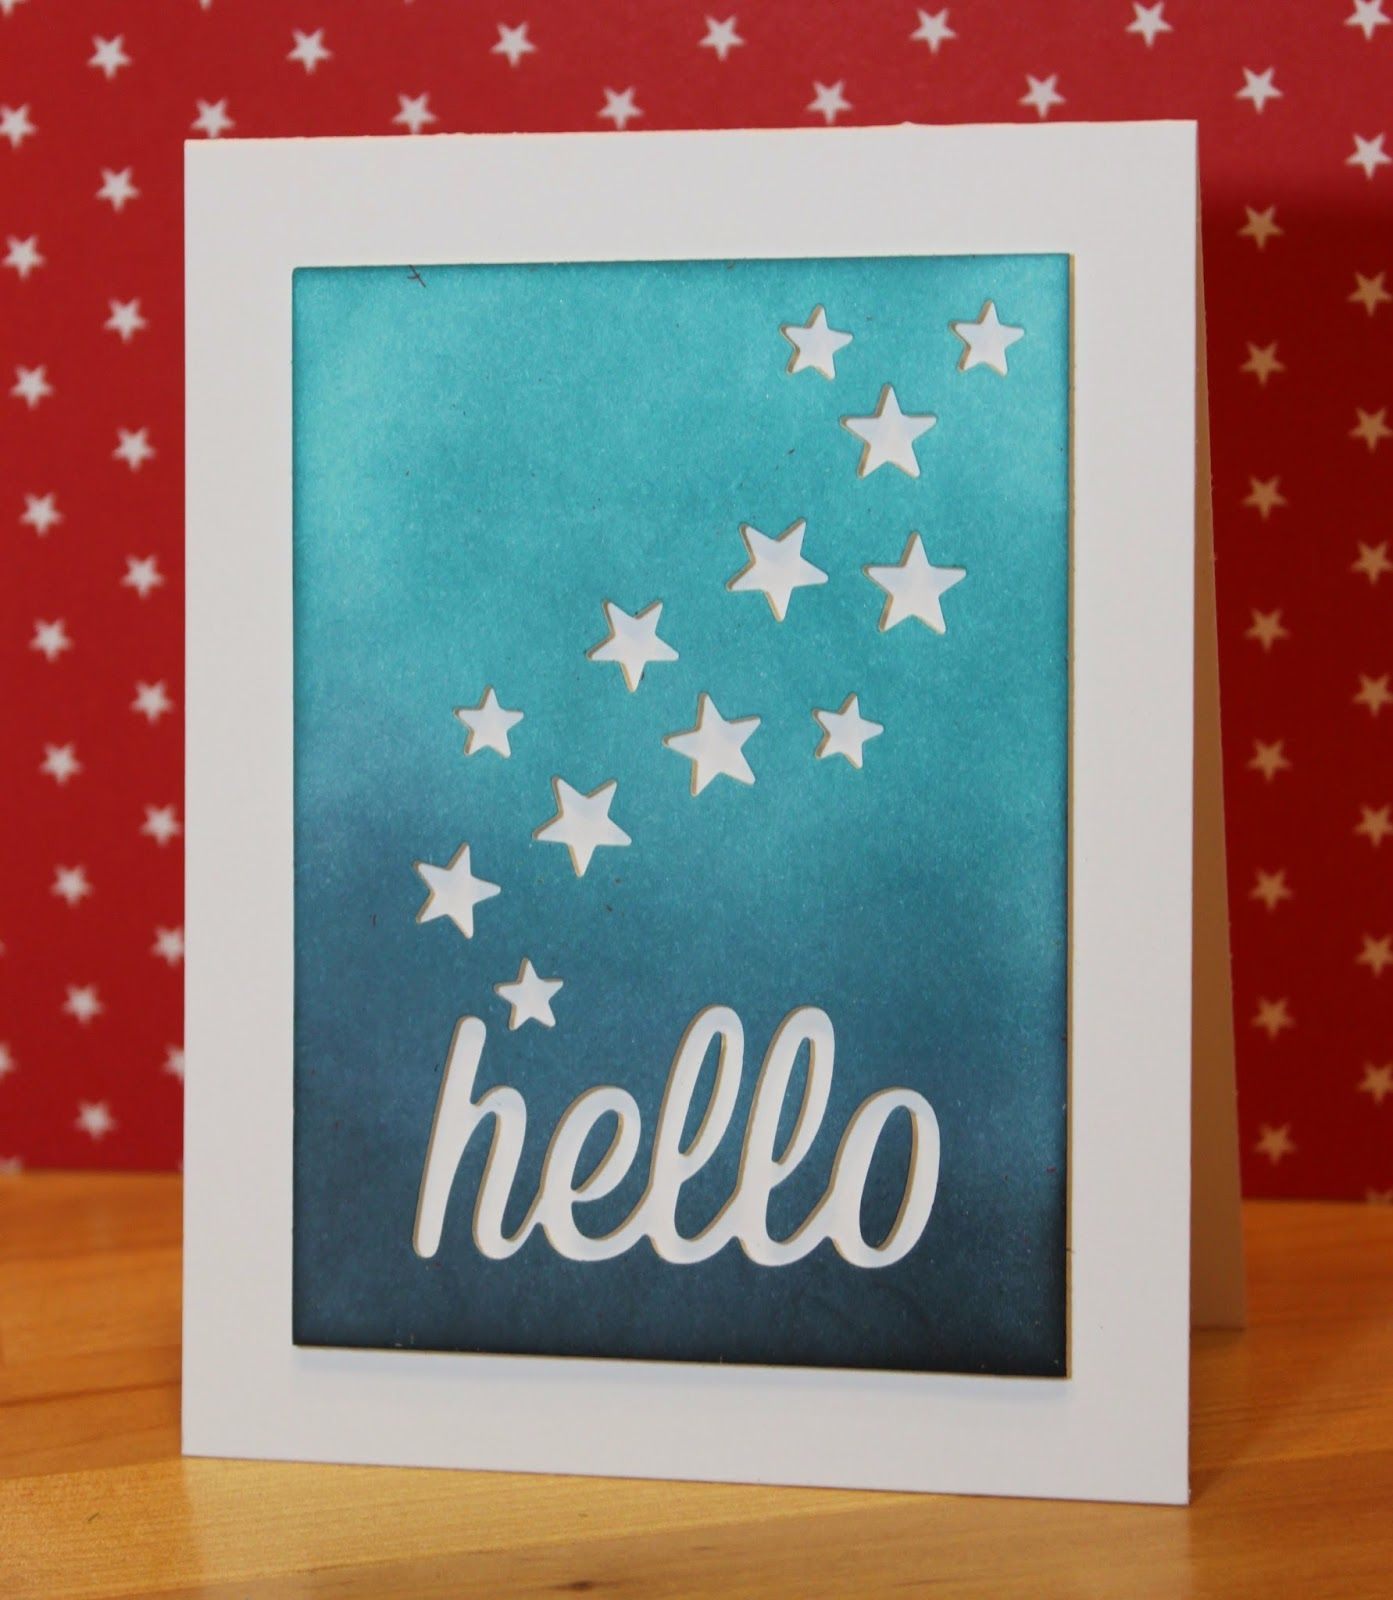 Handmade greeting card from whats next sponged panel with handmade greeting card from whats next sponged panel with negative space die cuts hello and little stars m4hsunfo